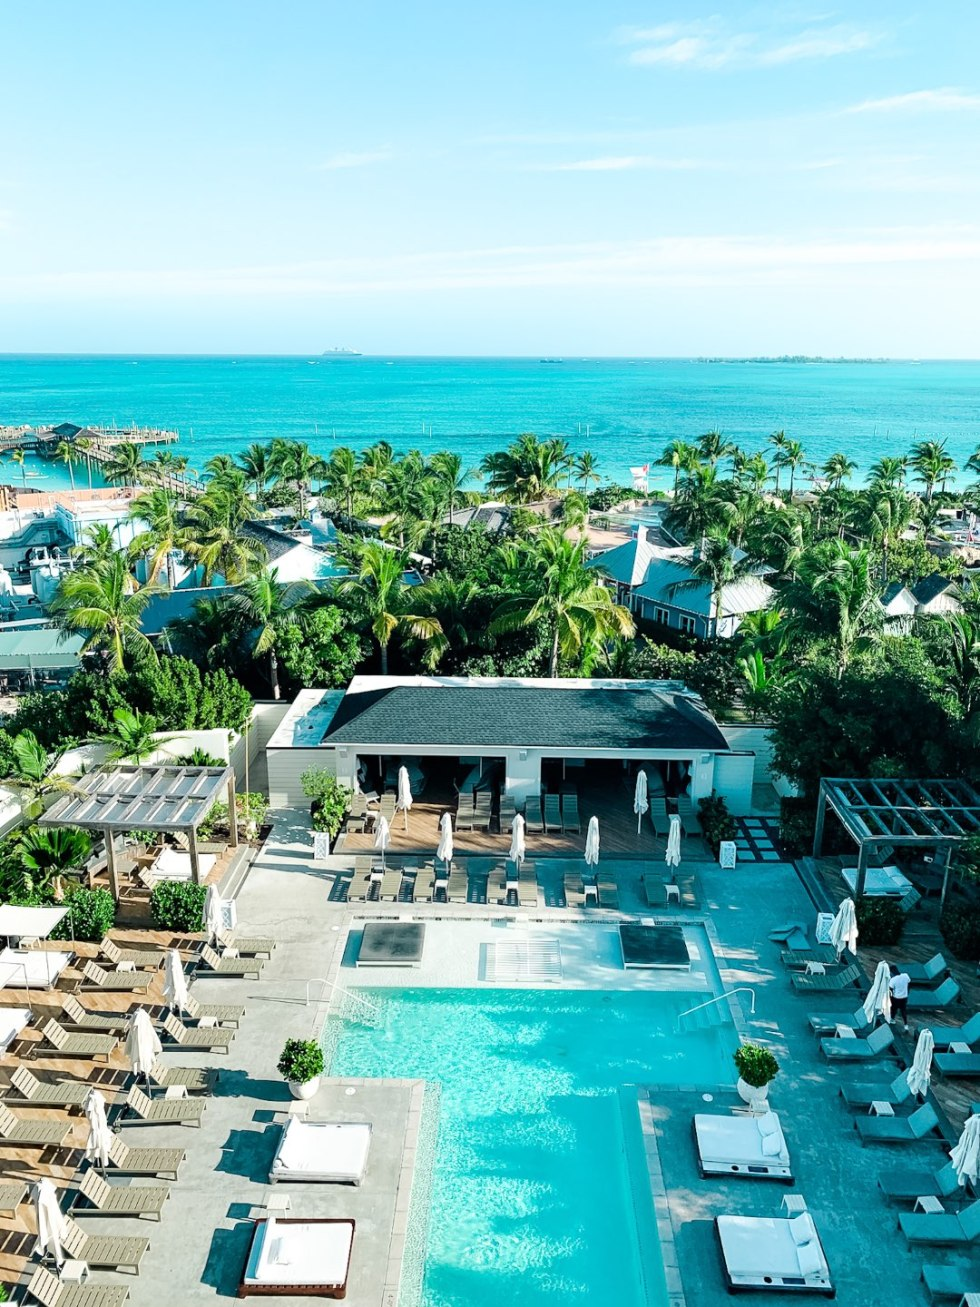 Warming Up in the Bahamas: the Best Things to Do at Baha Mar - I'm Fixin' To - @mbg0112 | Warming Up in the Bahamas: the Best Things to Do in Baha Mar by popular North Carolina travel blog, I'm Fixin' To: image of the Baha Mar swimming pool.